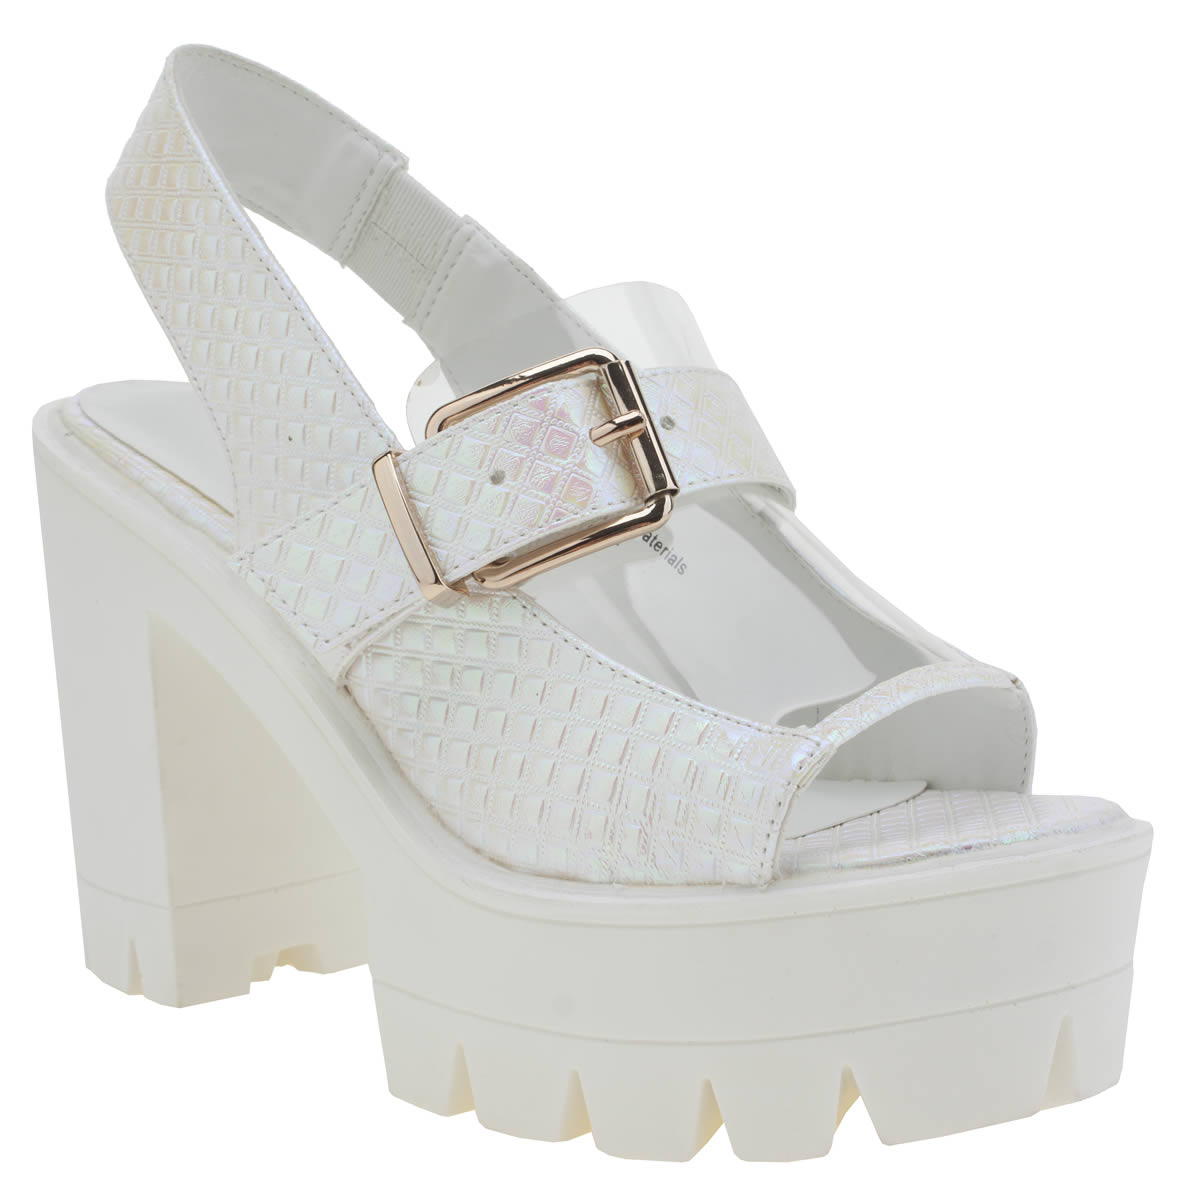 privileged Privileged White & Pink Harrd High Heels